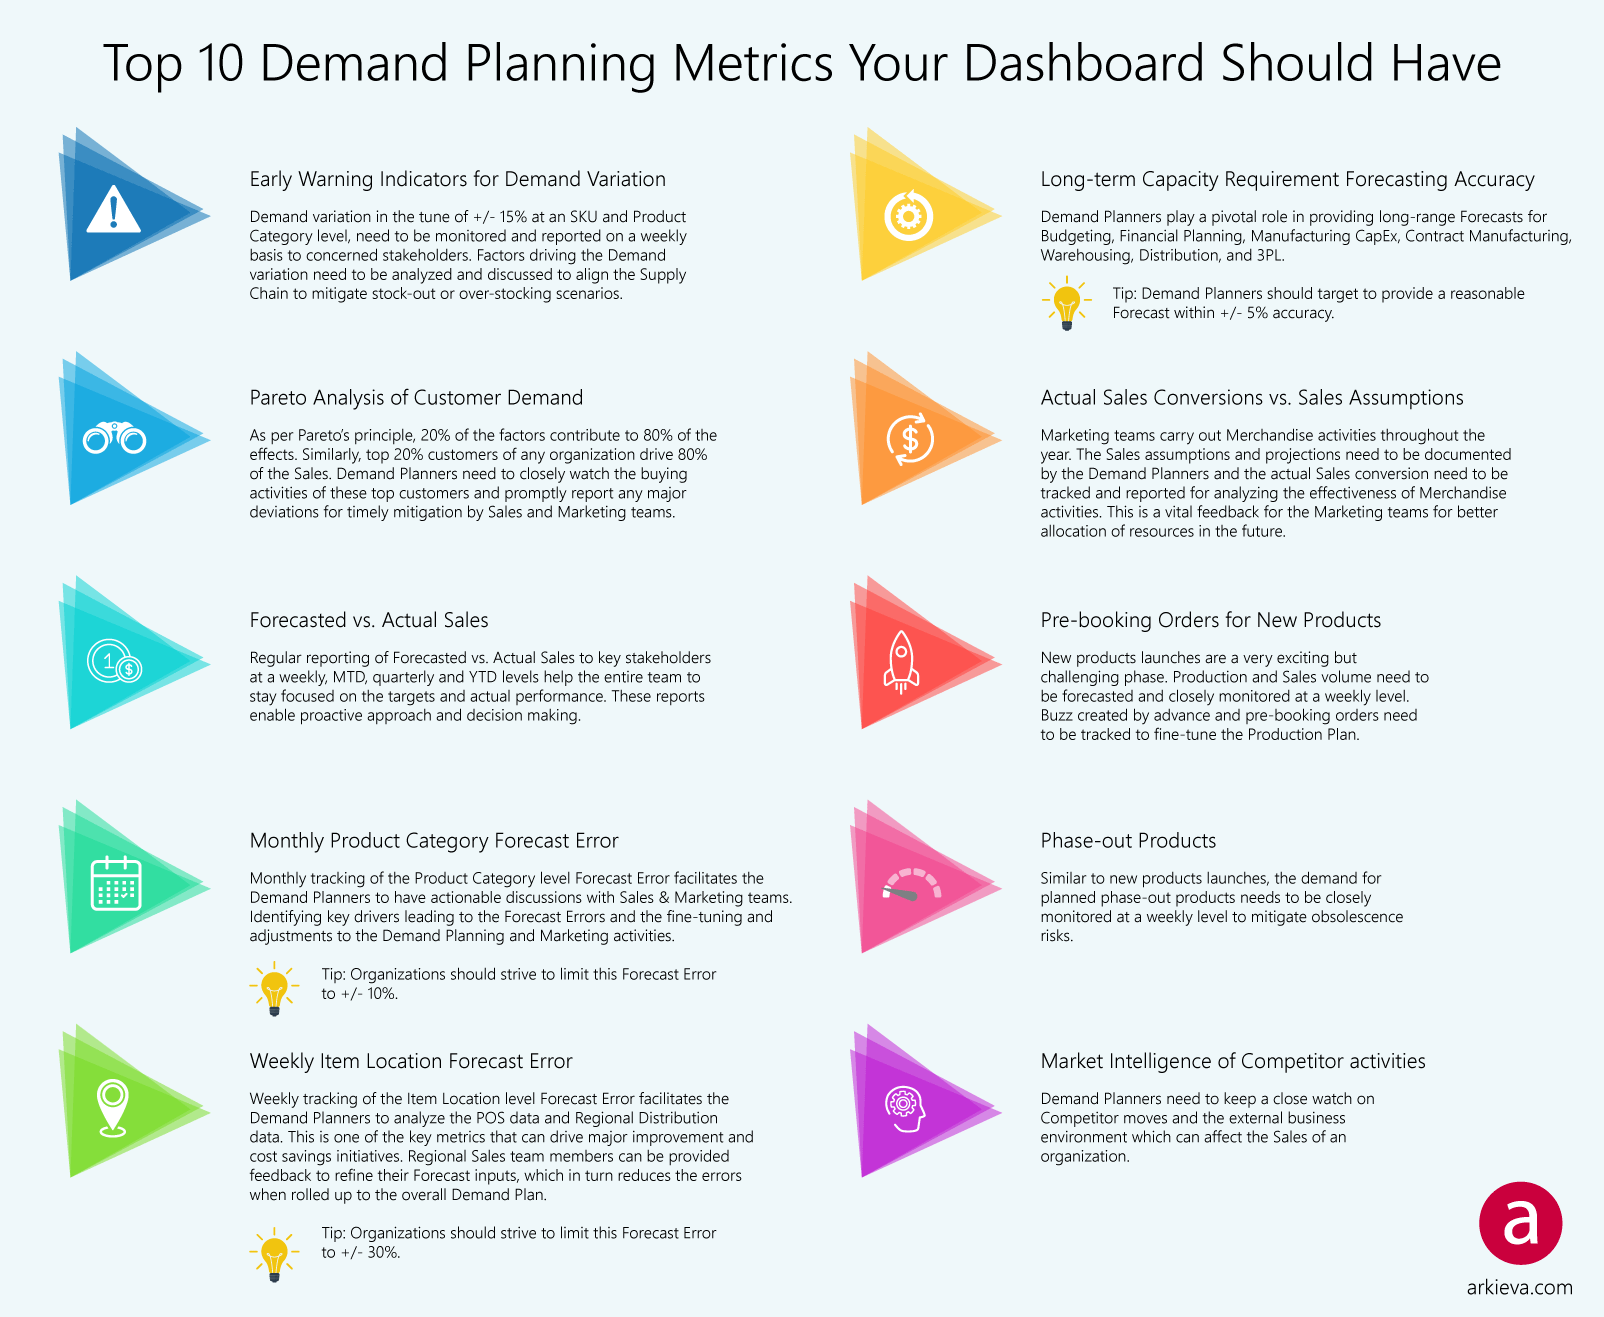 Top 10 Demand Planning Metrics You Should Have on Your